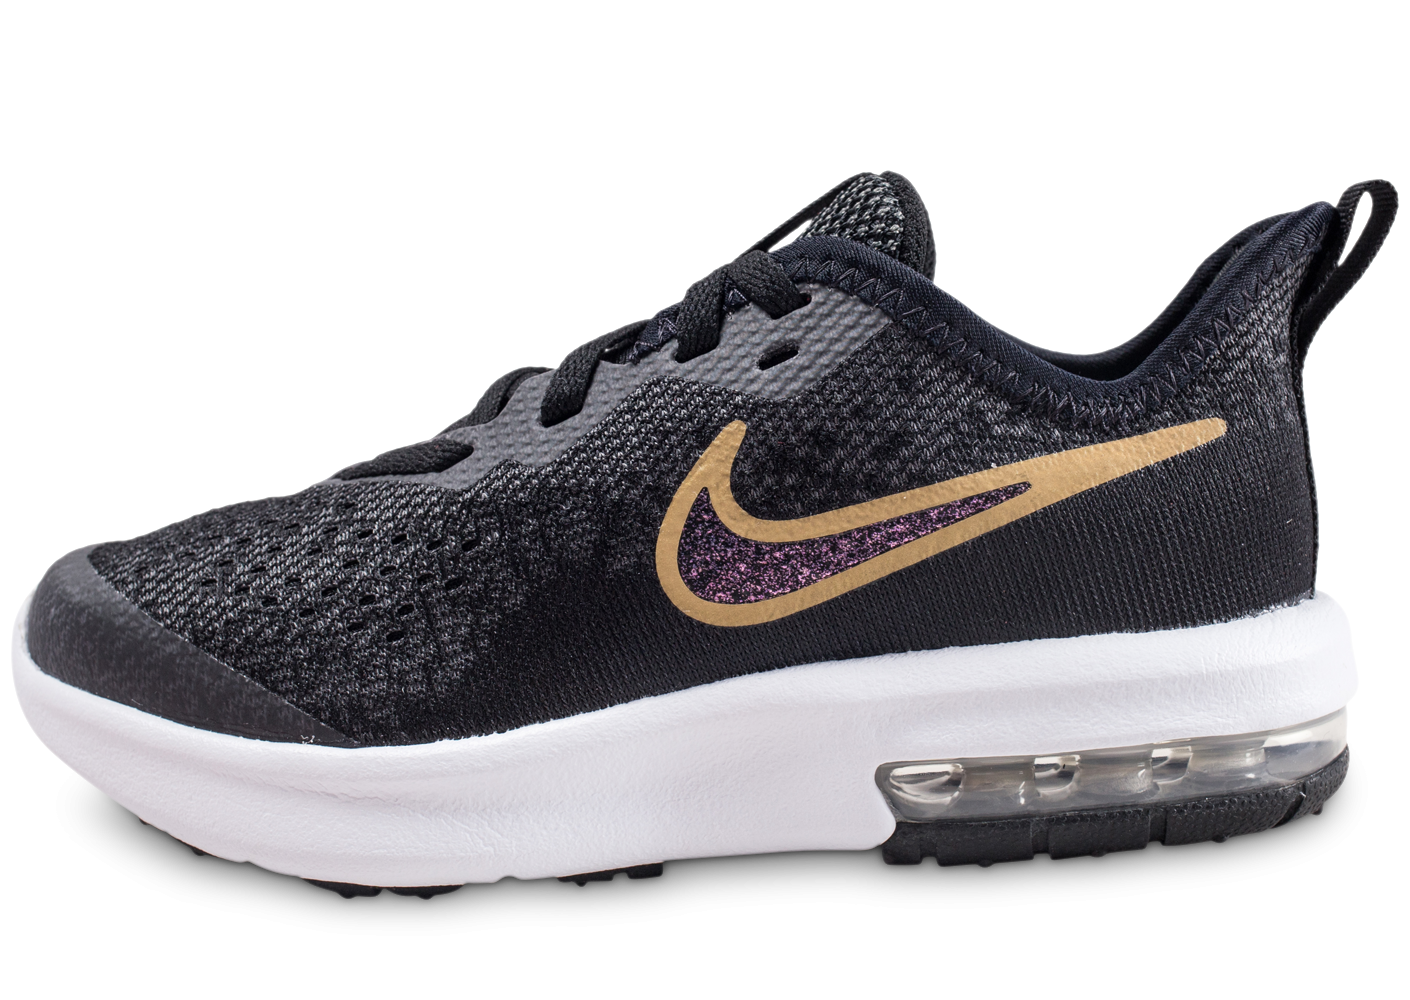 low priced 1a9a2 5e891 Nike Air Max Sequent noir et or enfant - Chaussures Enfant - Chausport